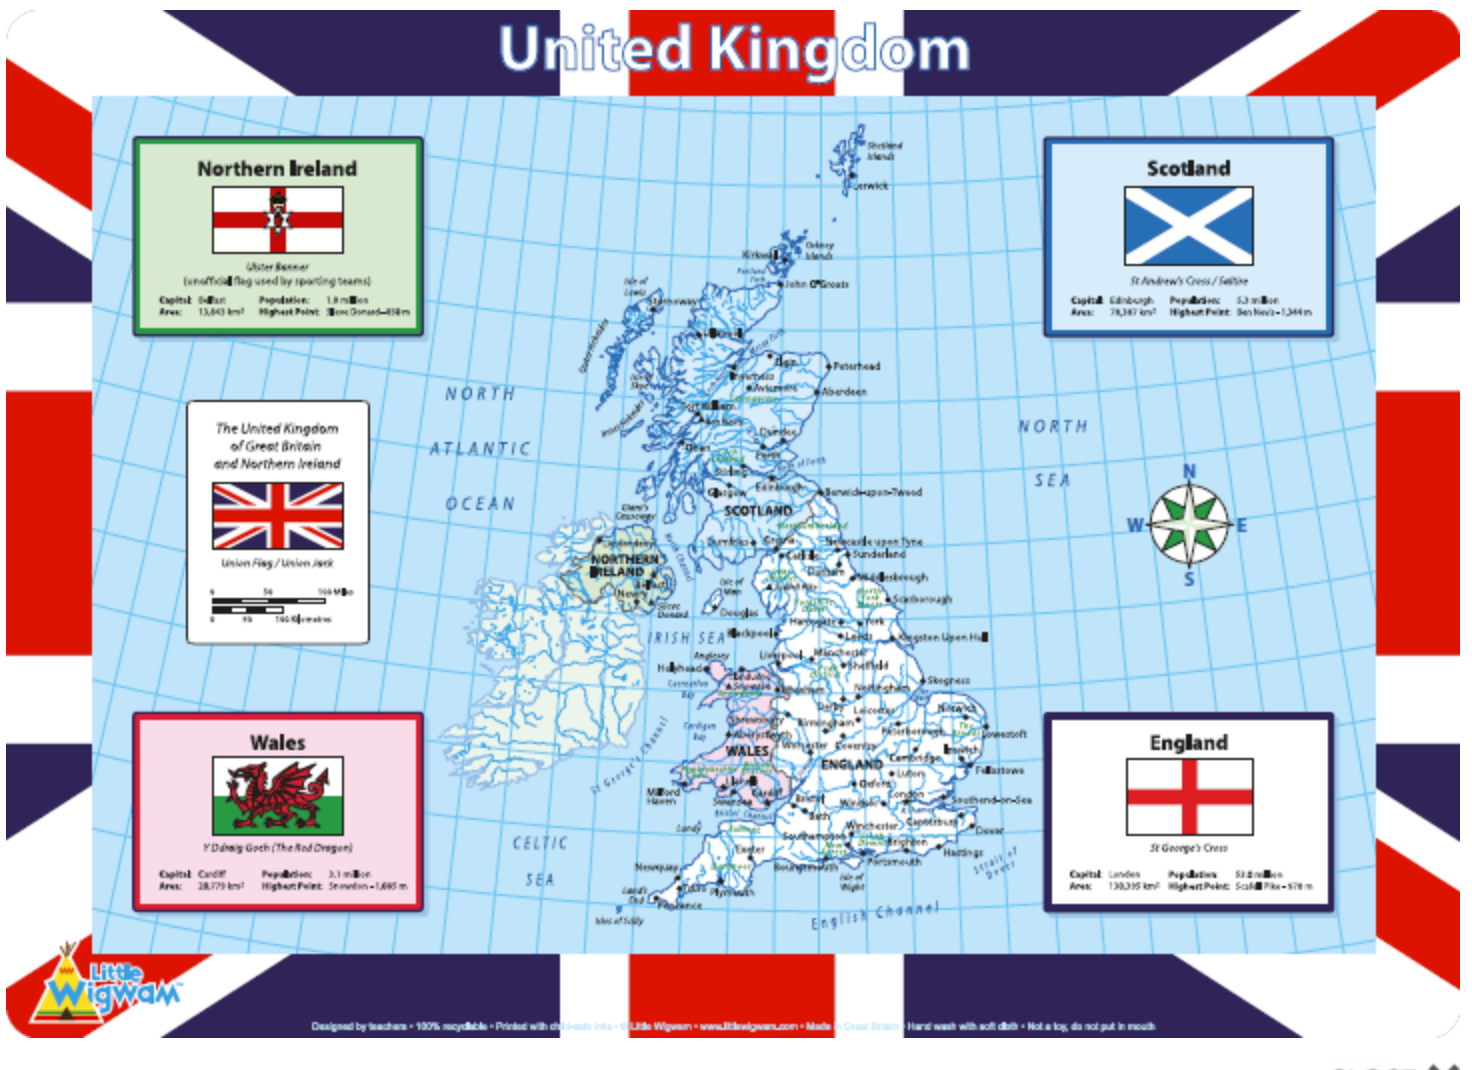 Little Wigwam United Kingdom Placemat